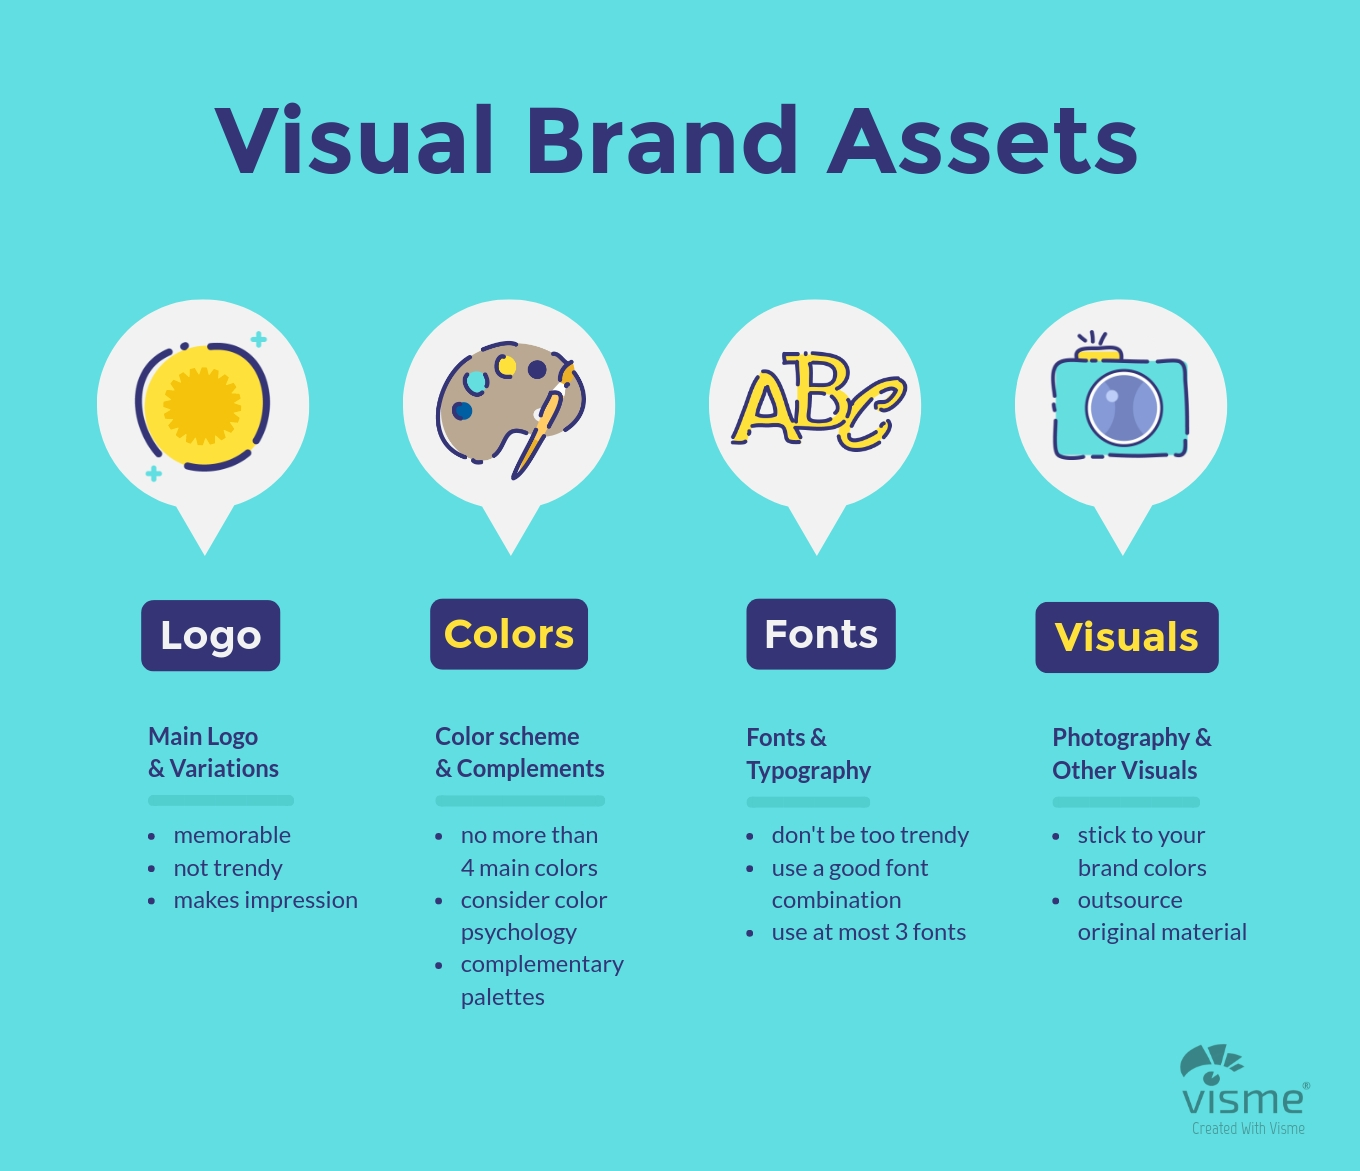 visual brand assets brand identity How to Create Branded Social Media Graphics That Will Make Followers Stop and Engage